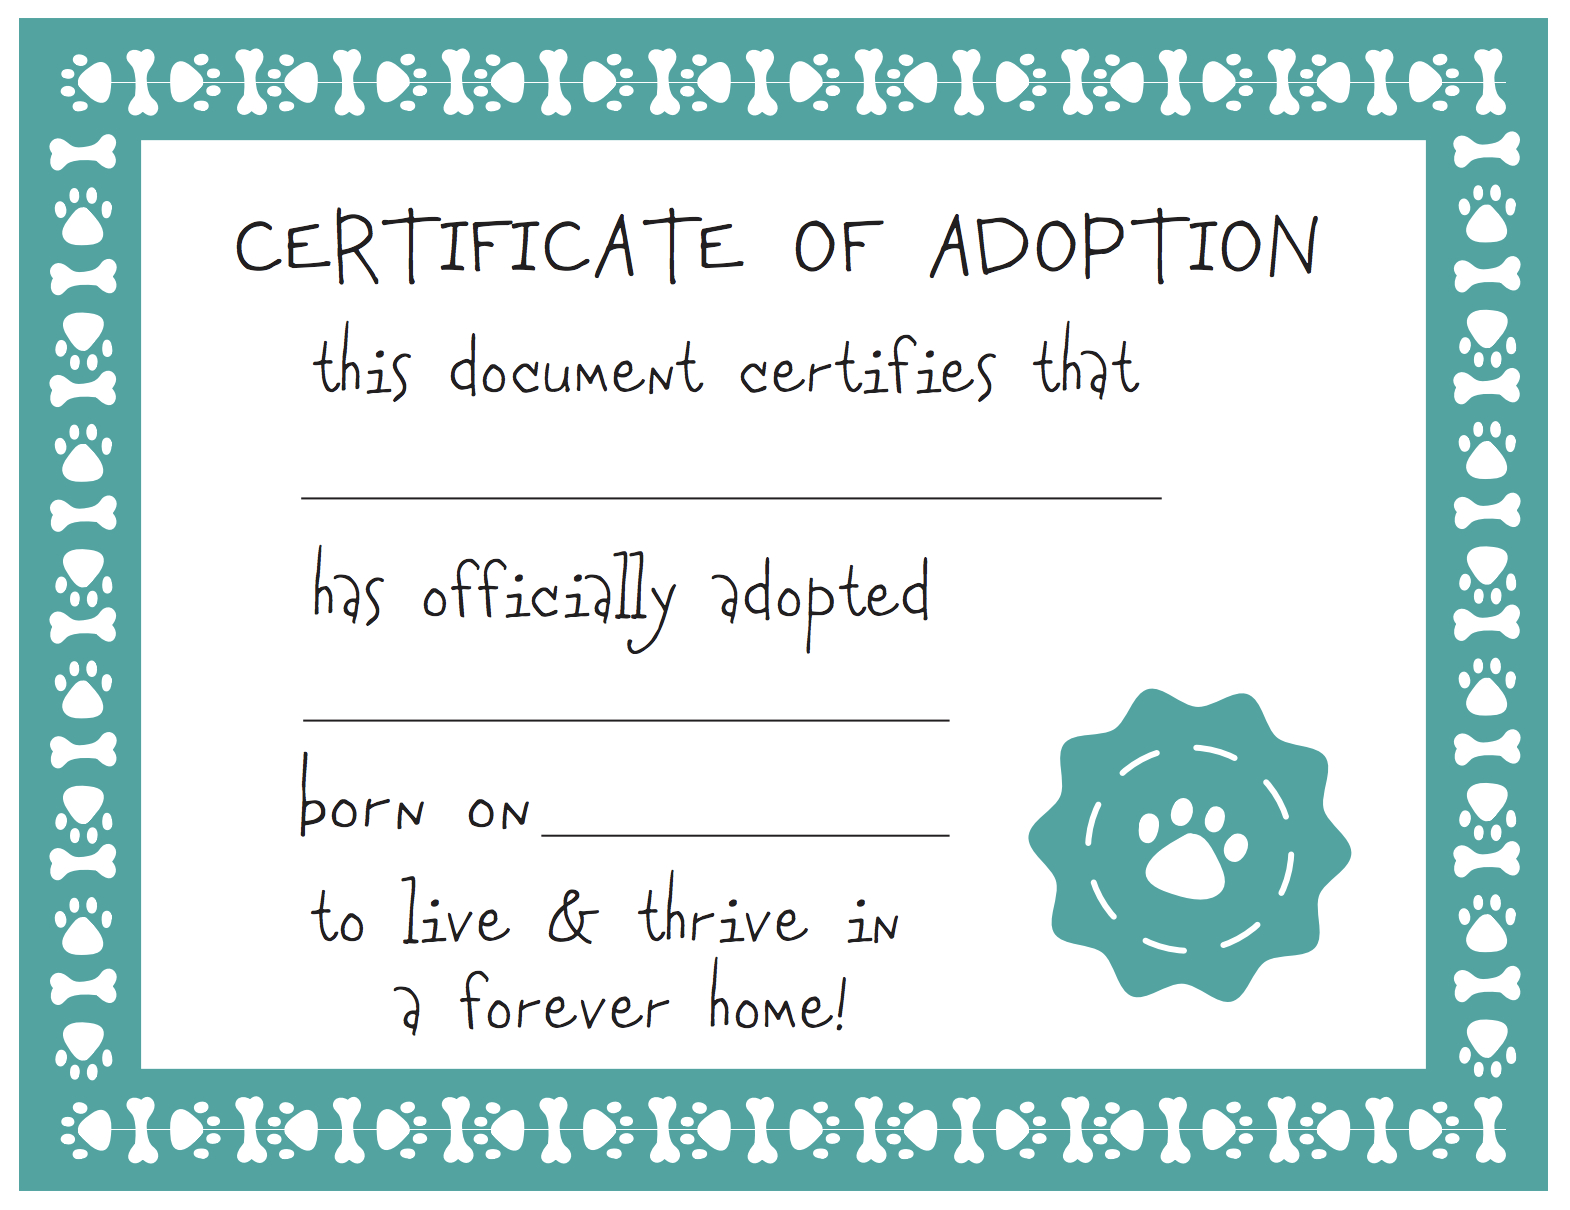 Adoption Certificate Template Free - Demir.iso-Consulting.co - Free Printable Adoption Certificate